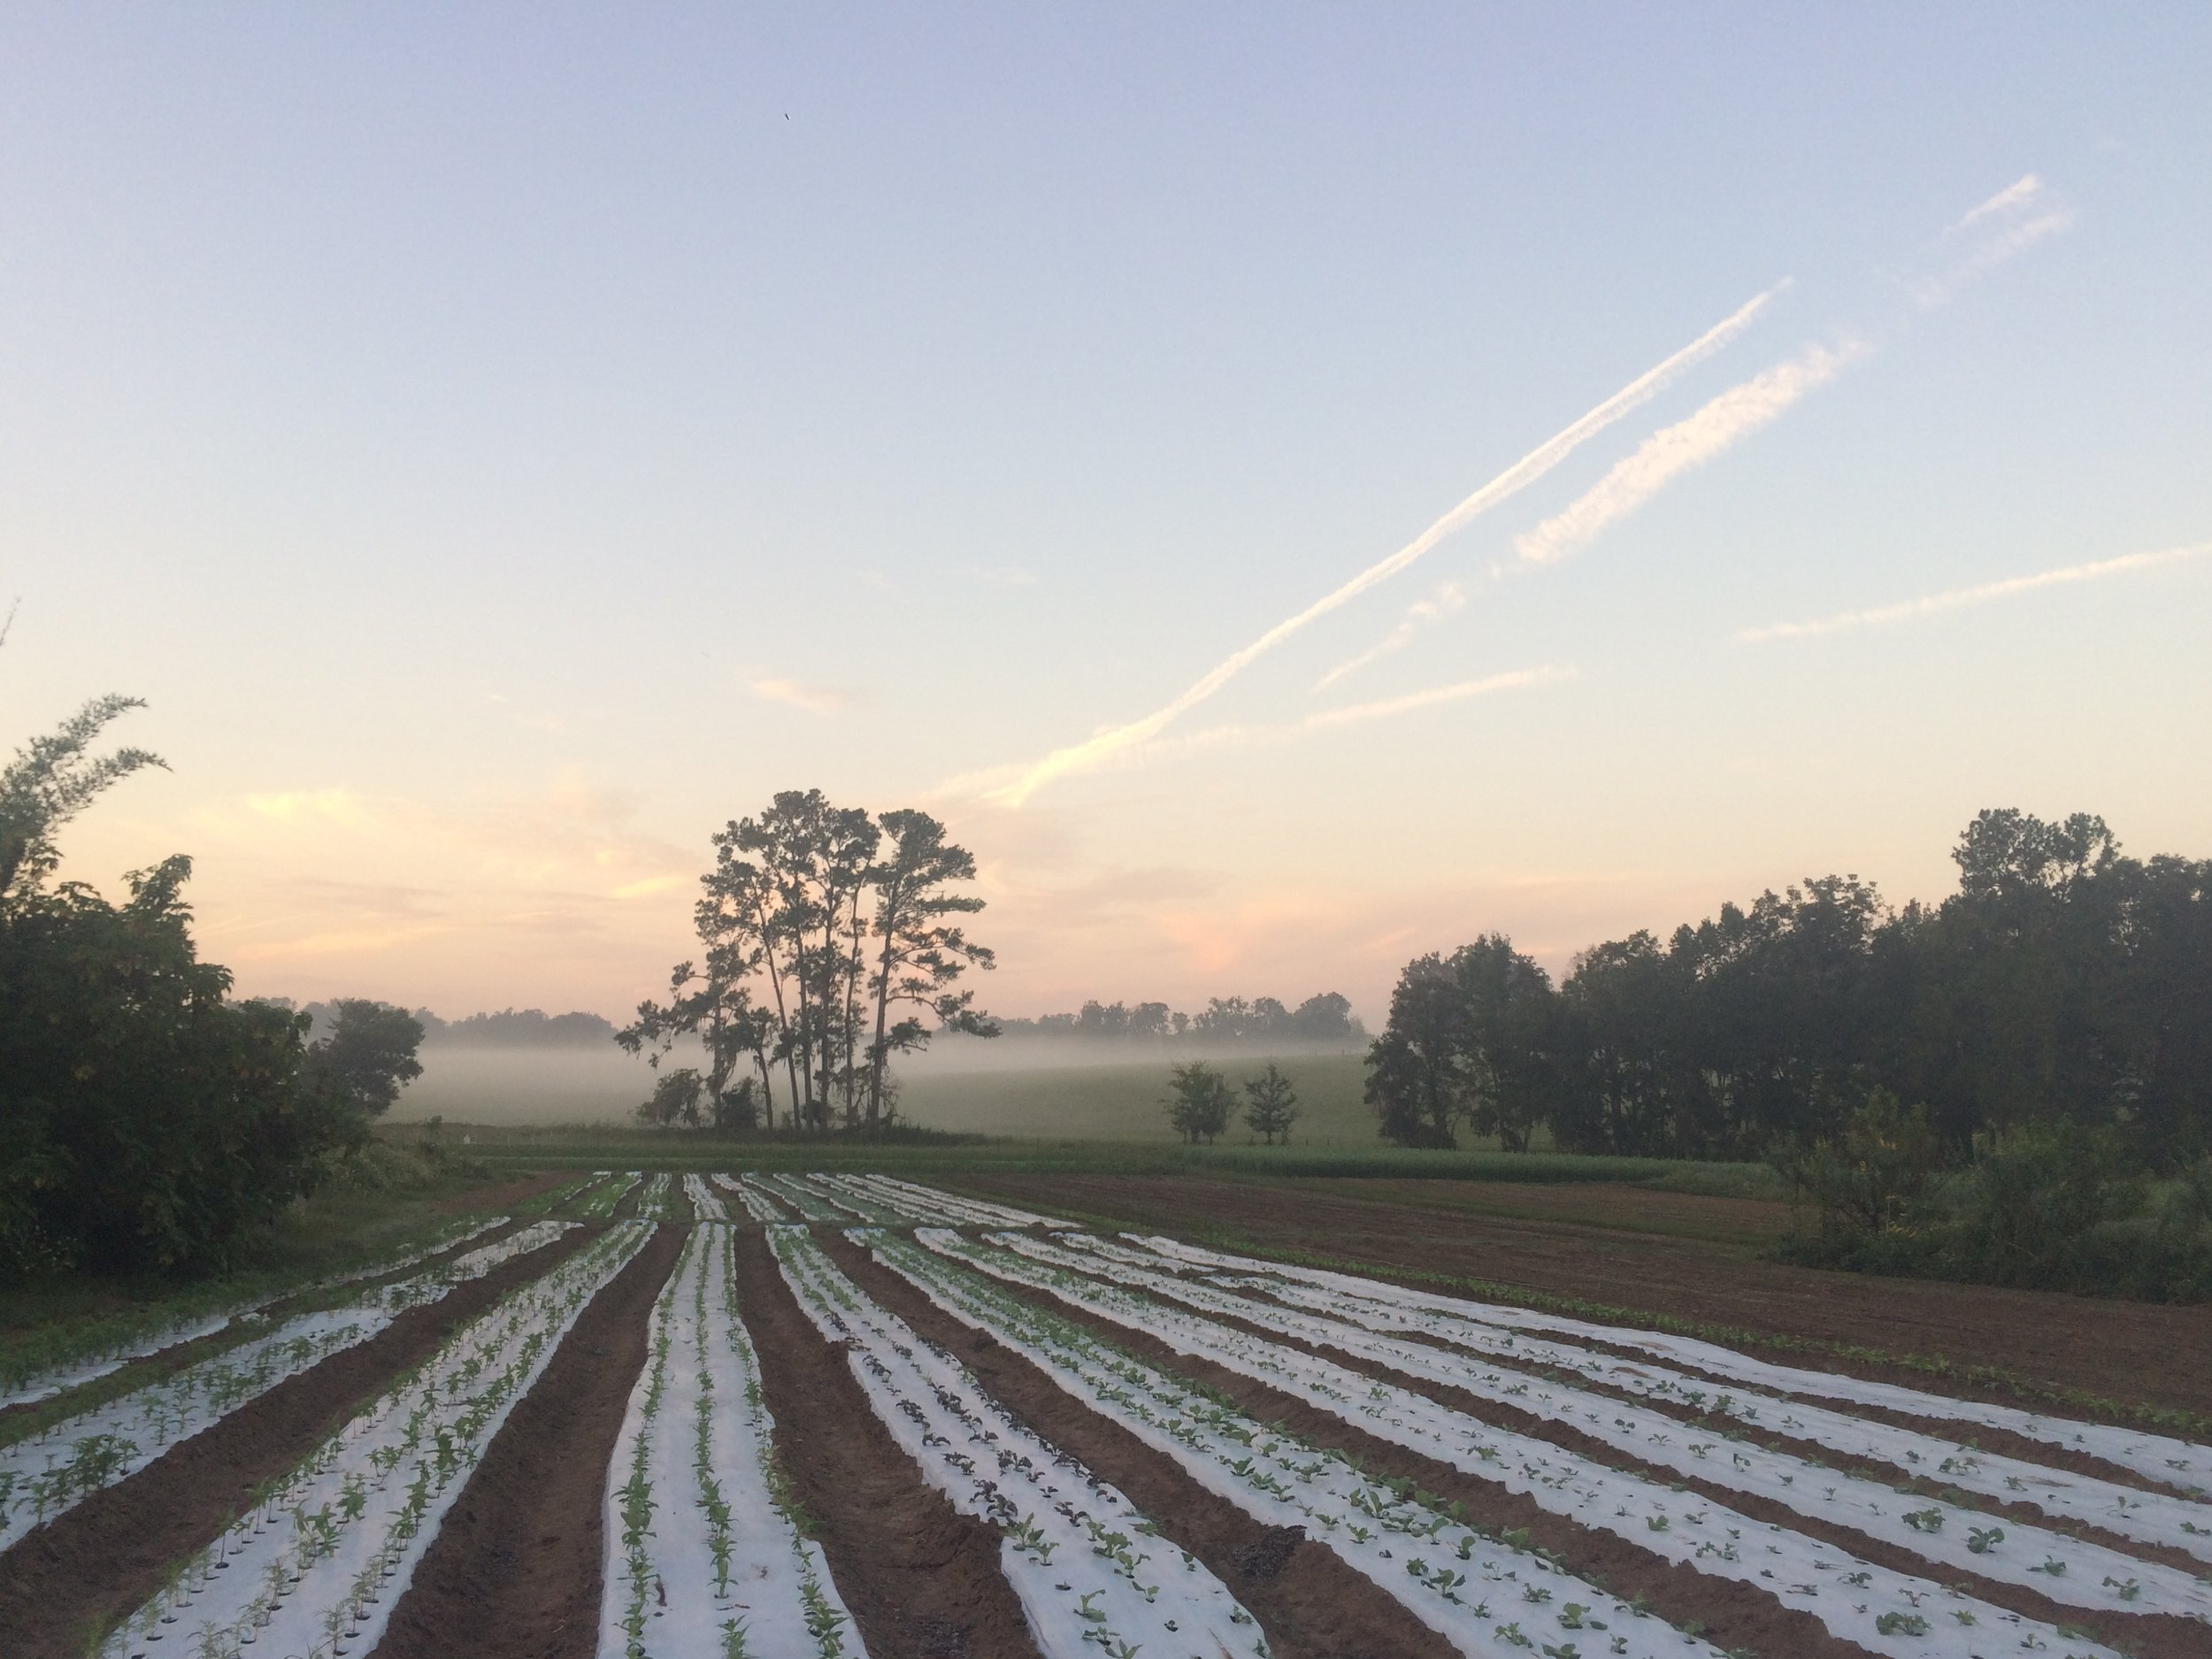 New beds of fall crops on Swallowtail Farm, the biodynamic farm where Emily Sylvestre has spent two seasons learning what it means to be a farmer.